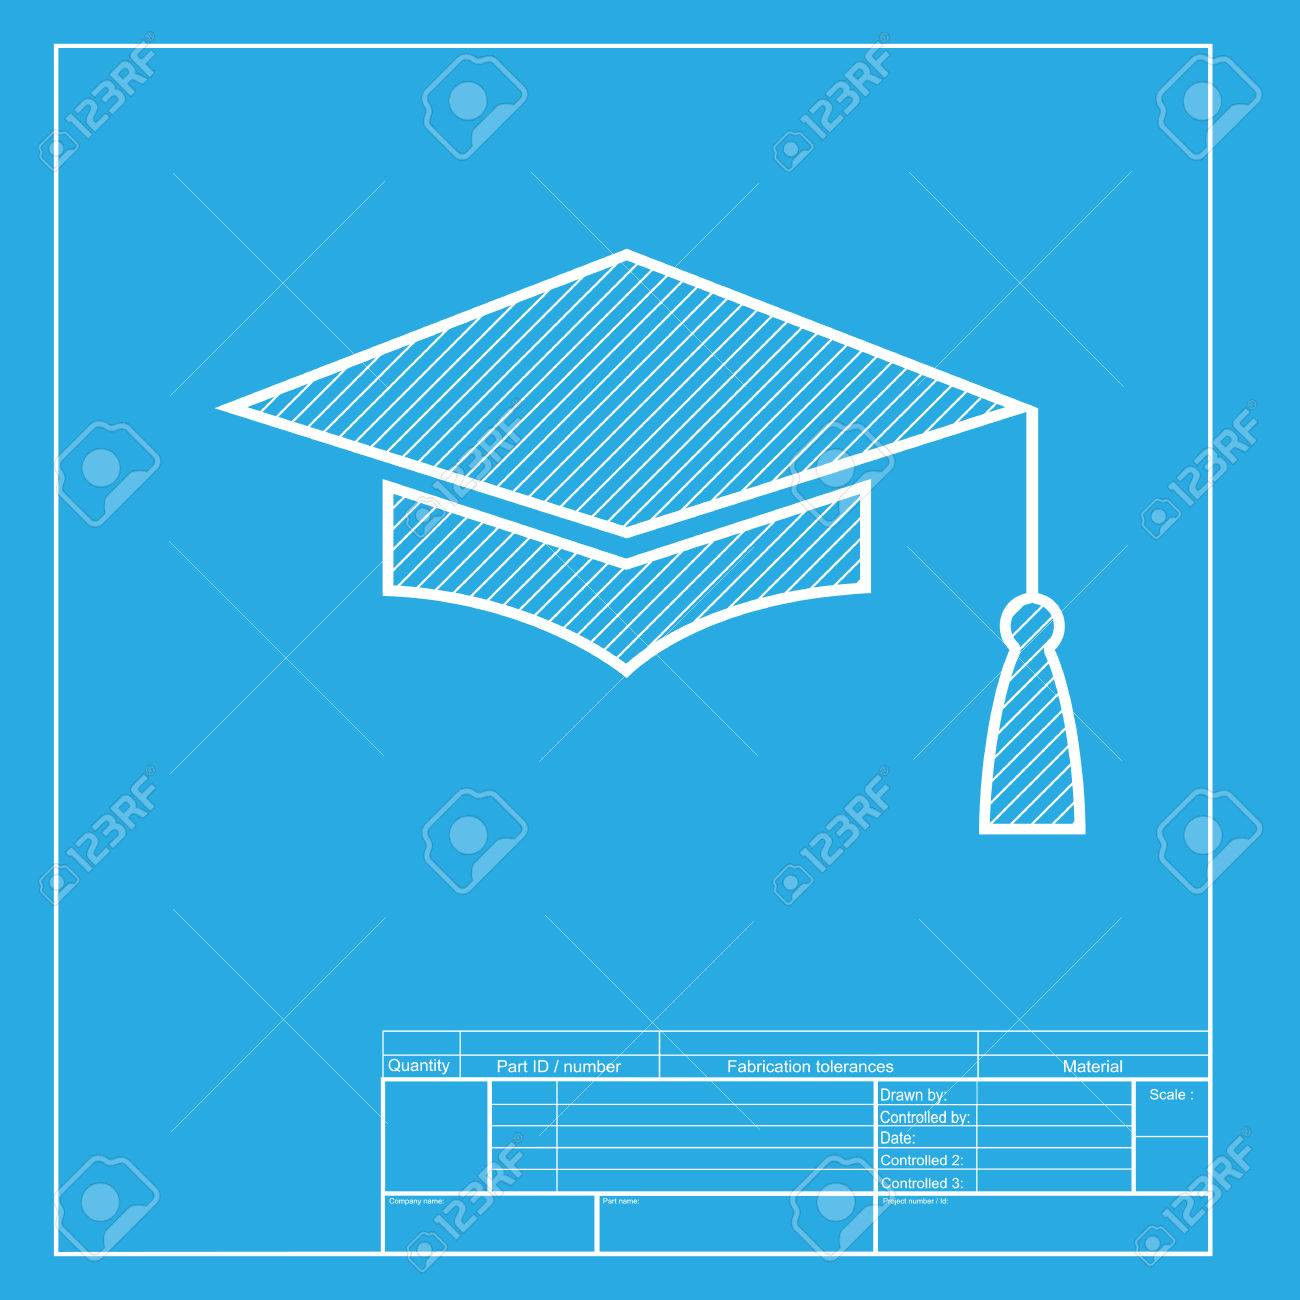 mortar board or graduation cap education symbol white section